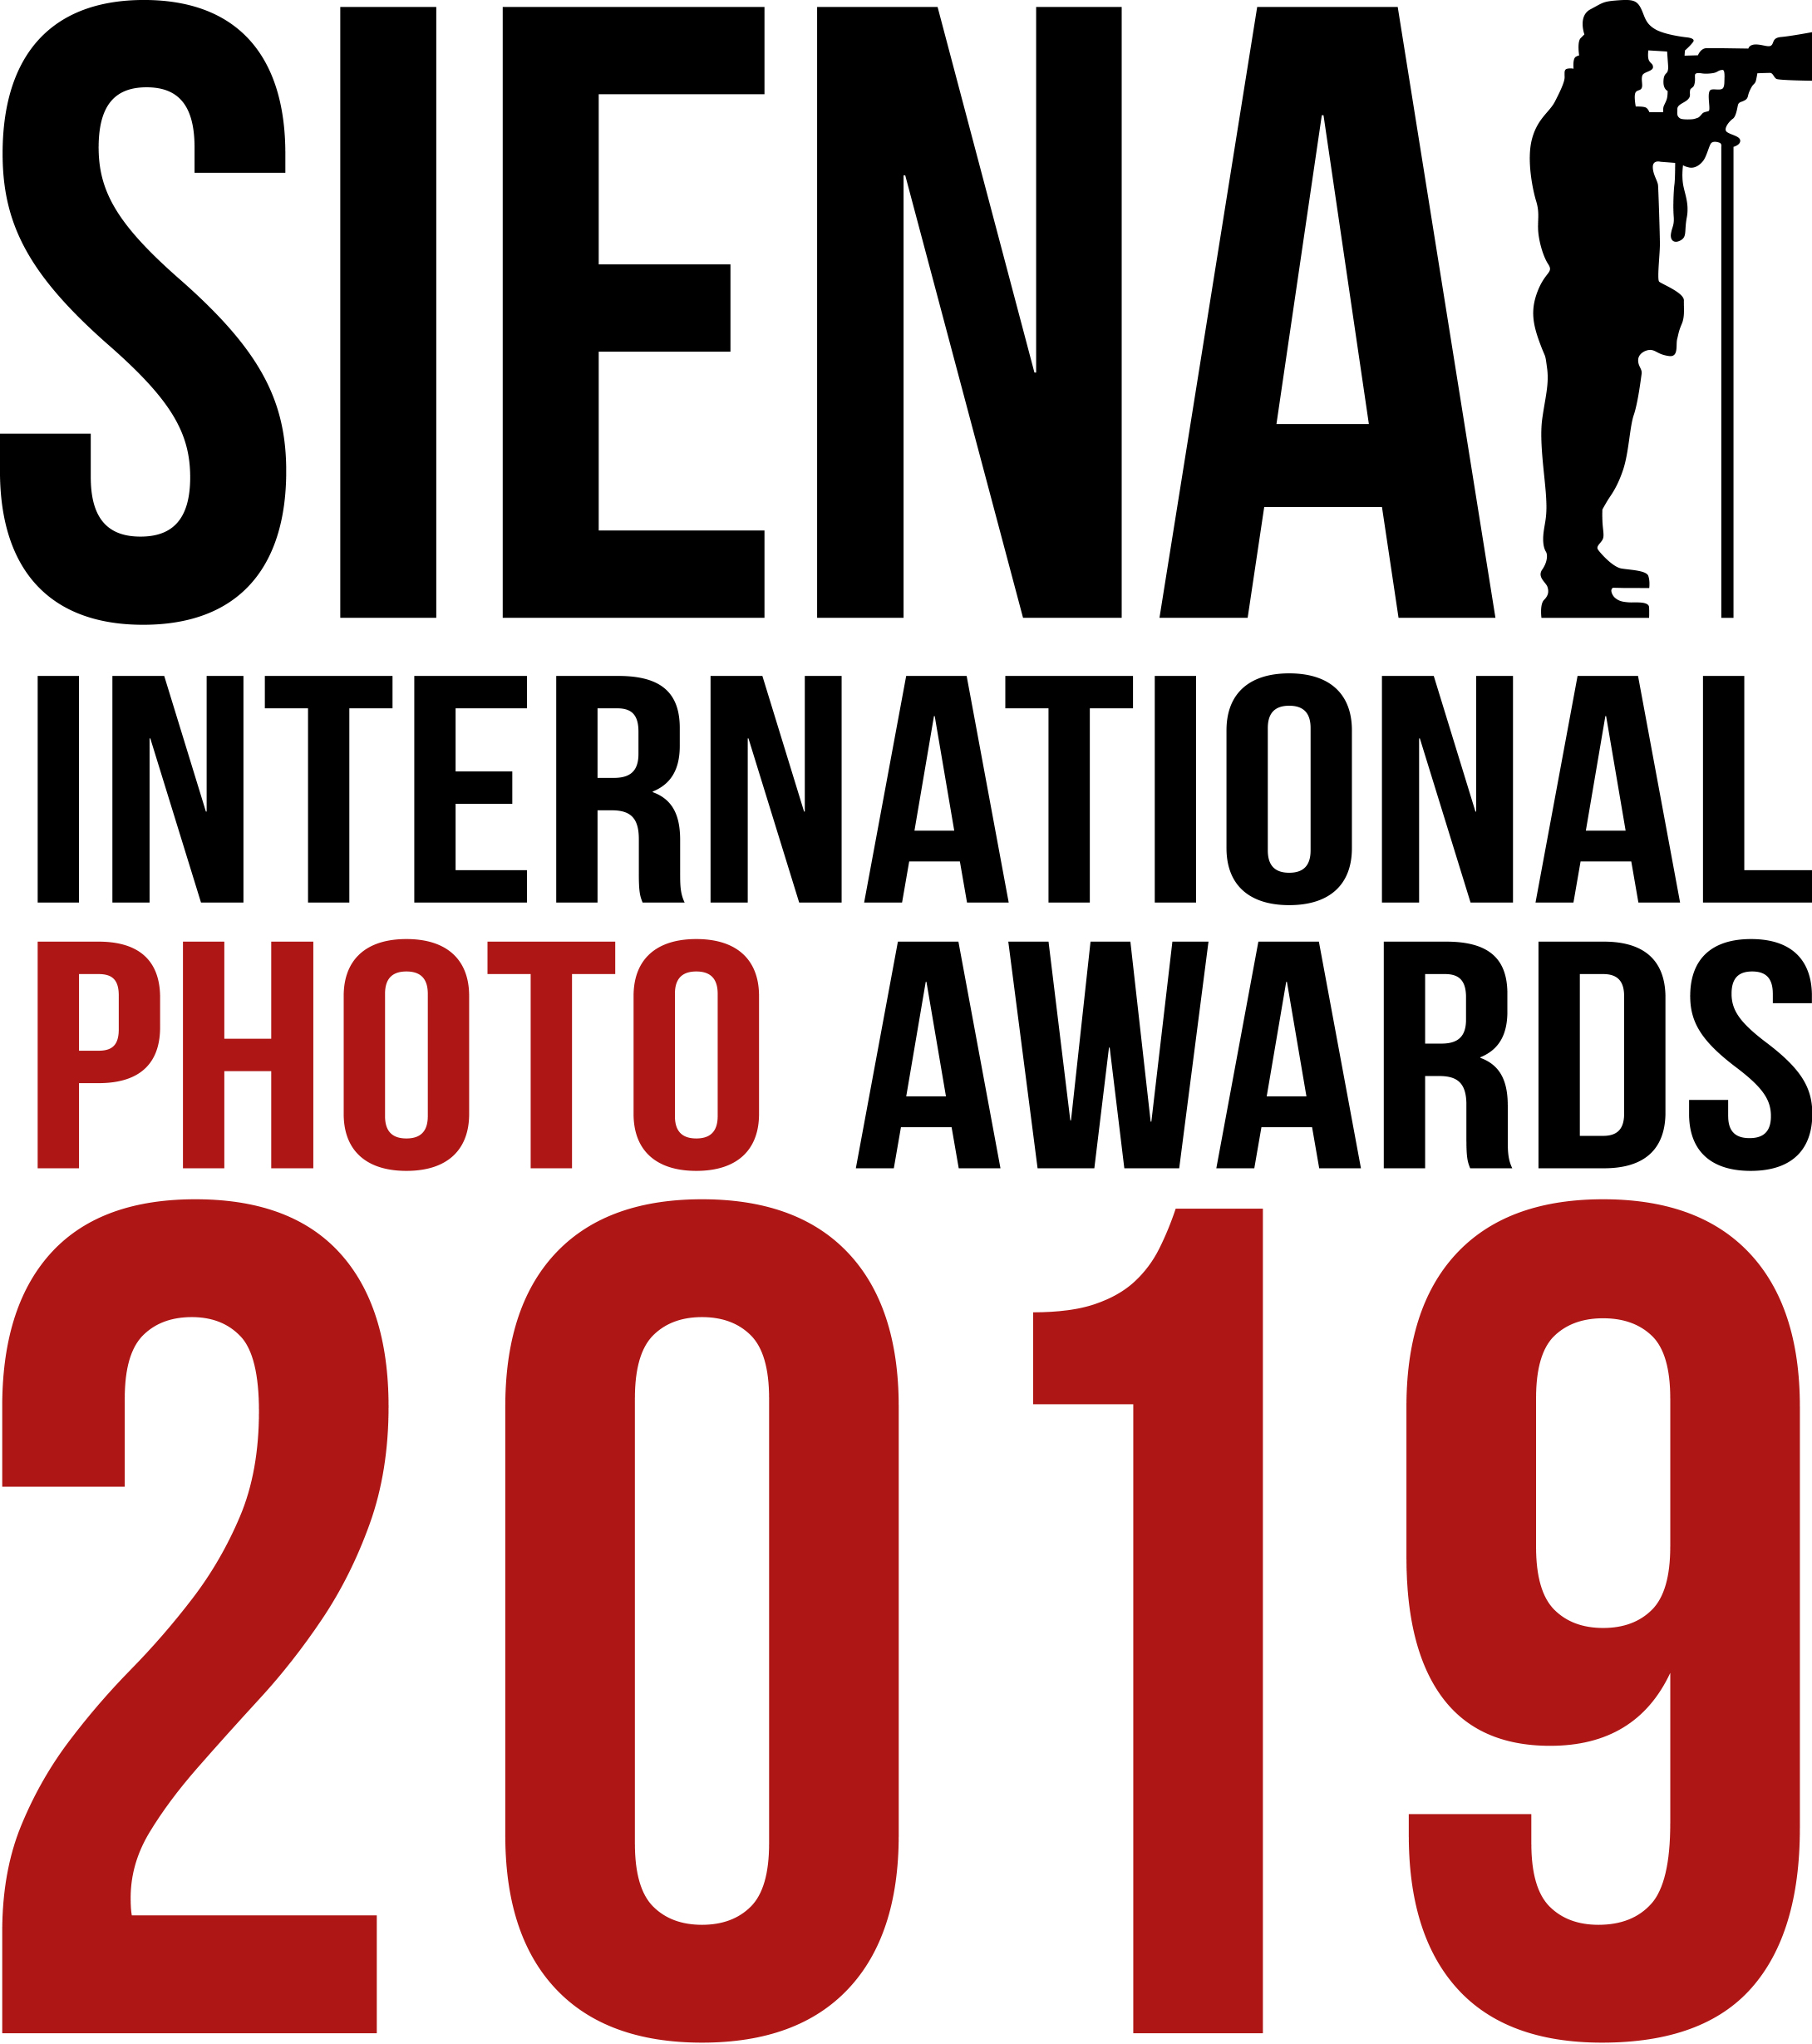 SIENA INTERNATIONAL PHOTO AWARDS 2019 - logo